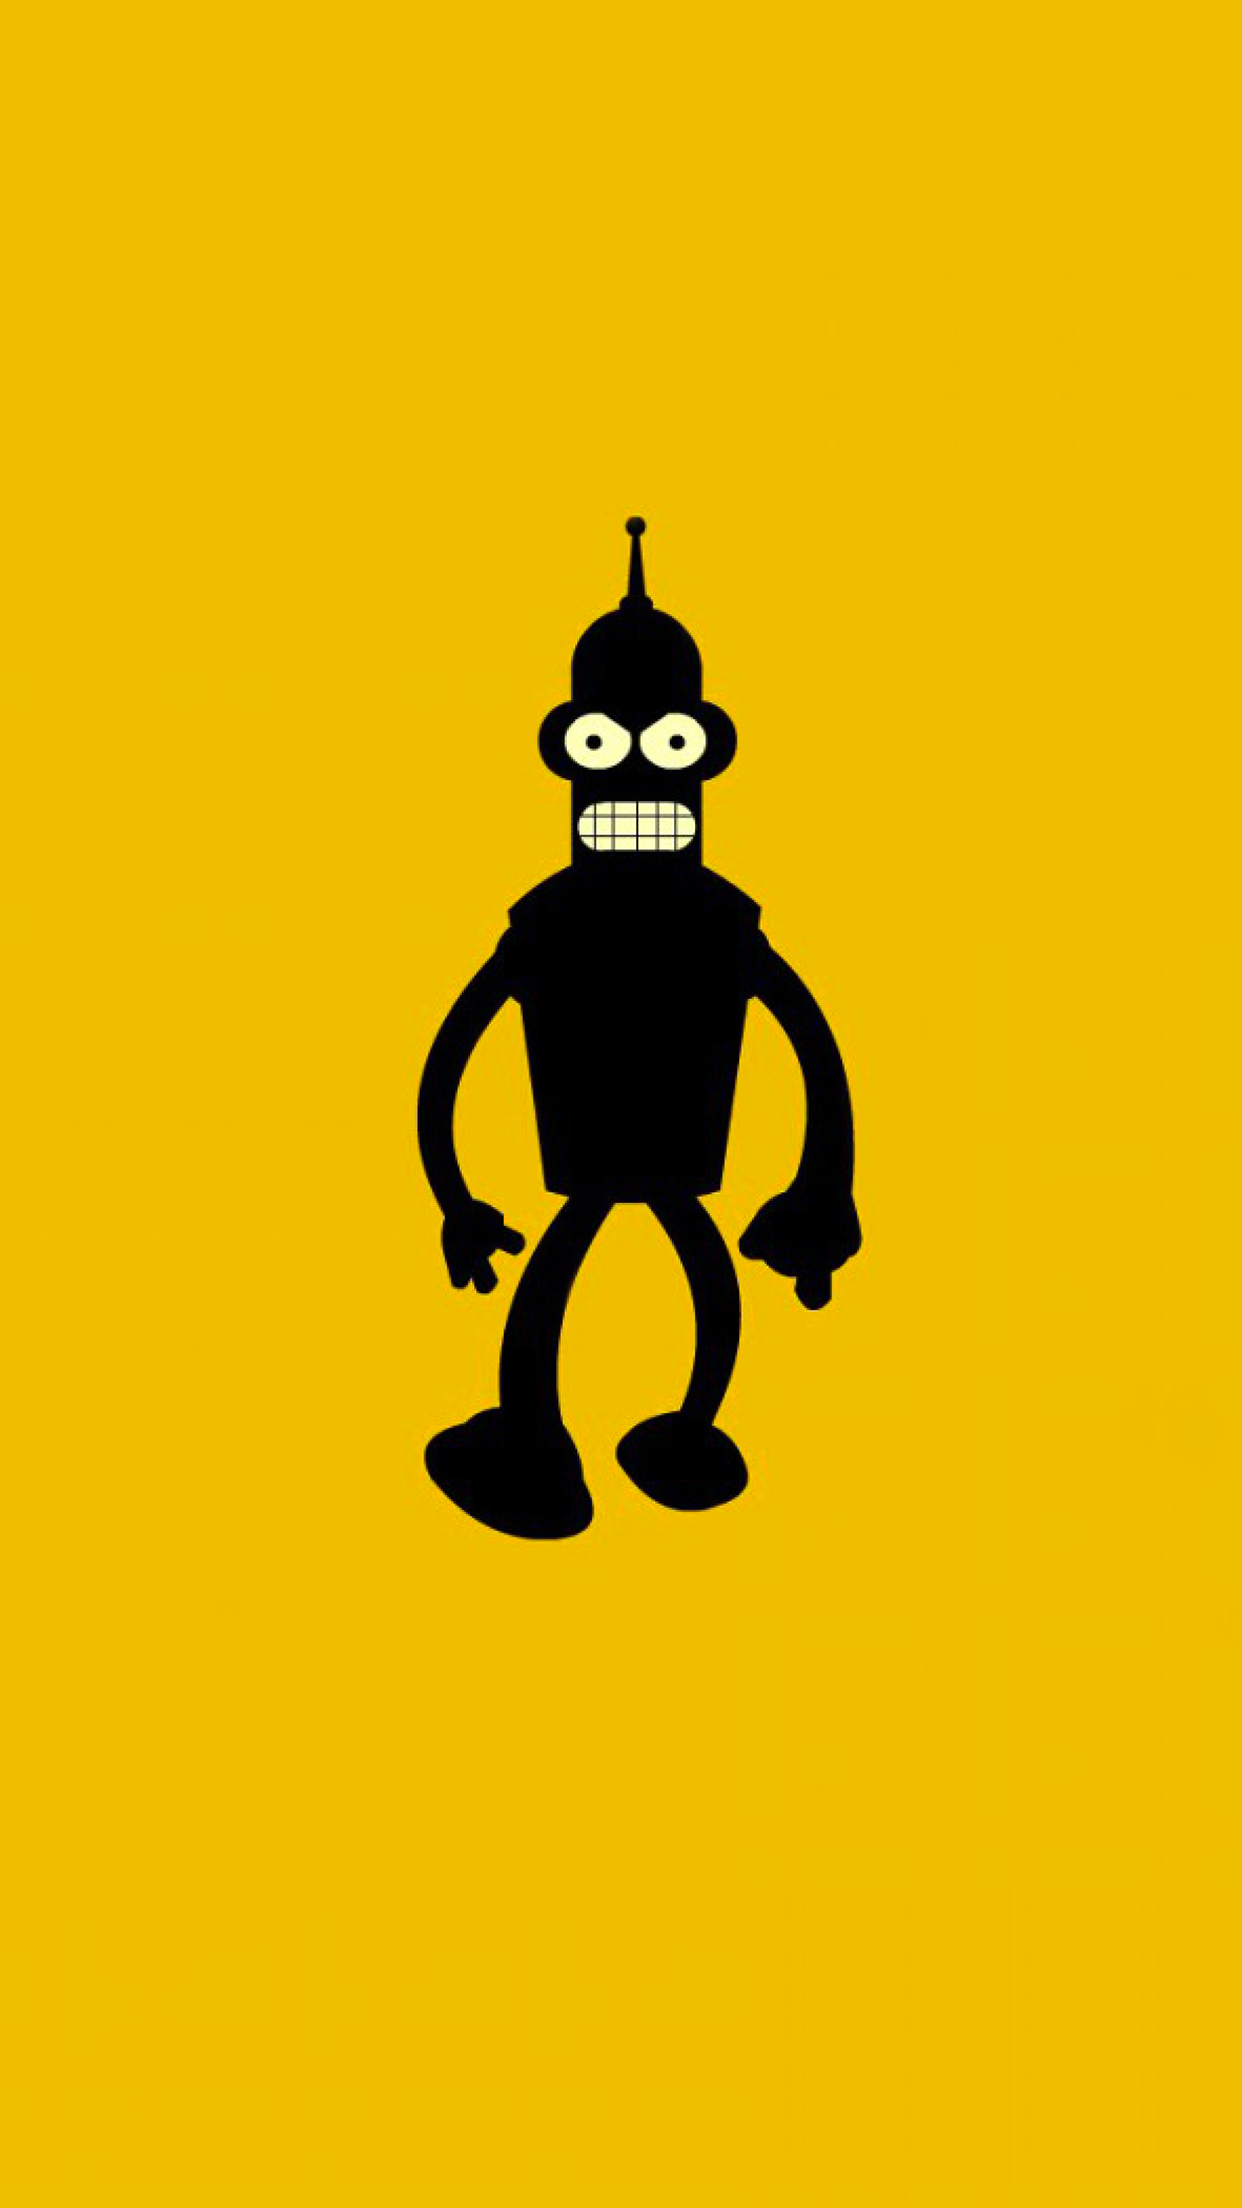 Bender Yellow Wallpaper For Iphone X 8 7 6 Free Download On